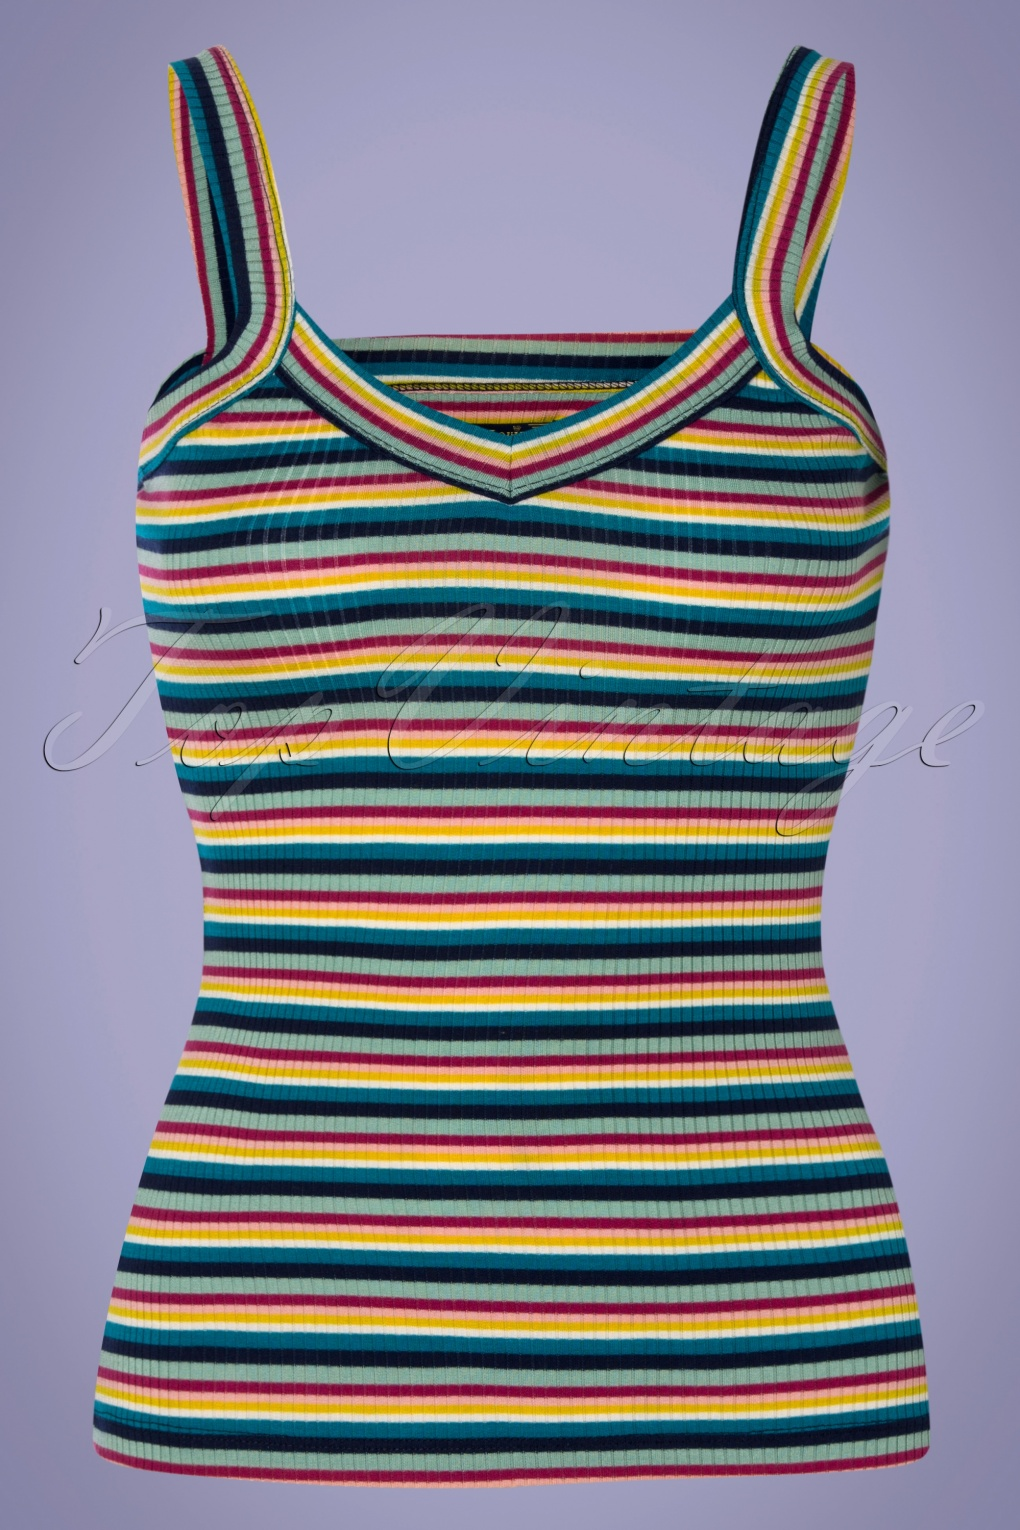 60s Shirts, T-shirts, Blouses, Hippie Shirts 60s Isa Daydream Stripes Camisole Top in Blue £35.05 AT vintagedancer.com